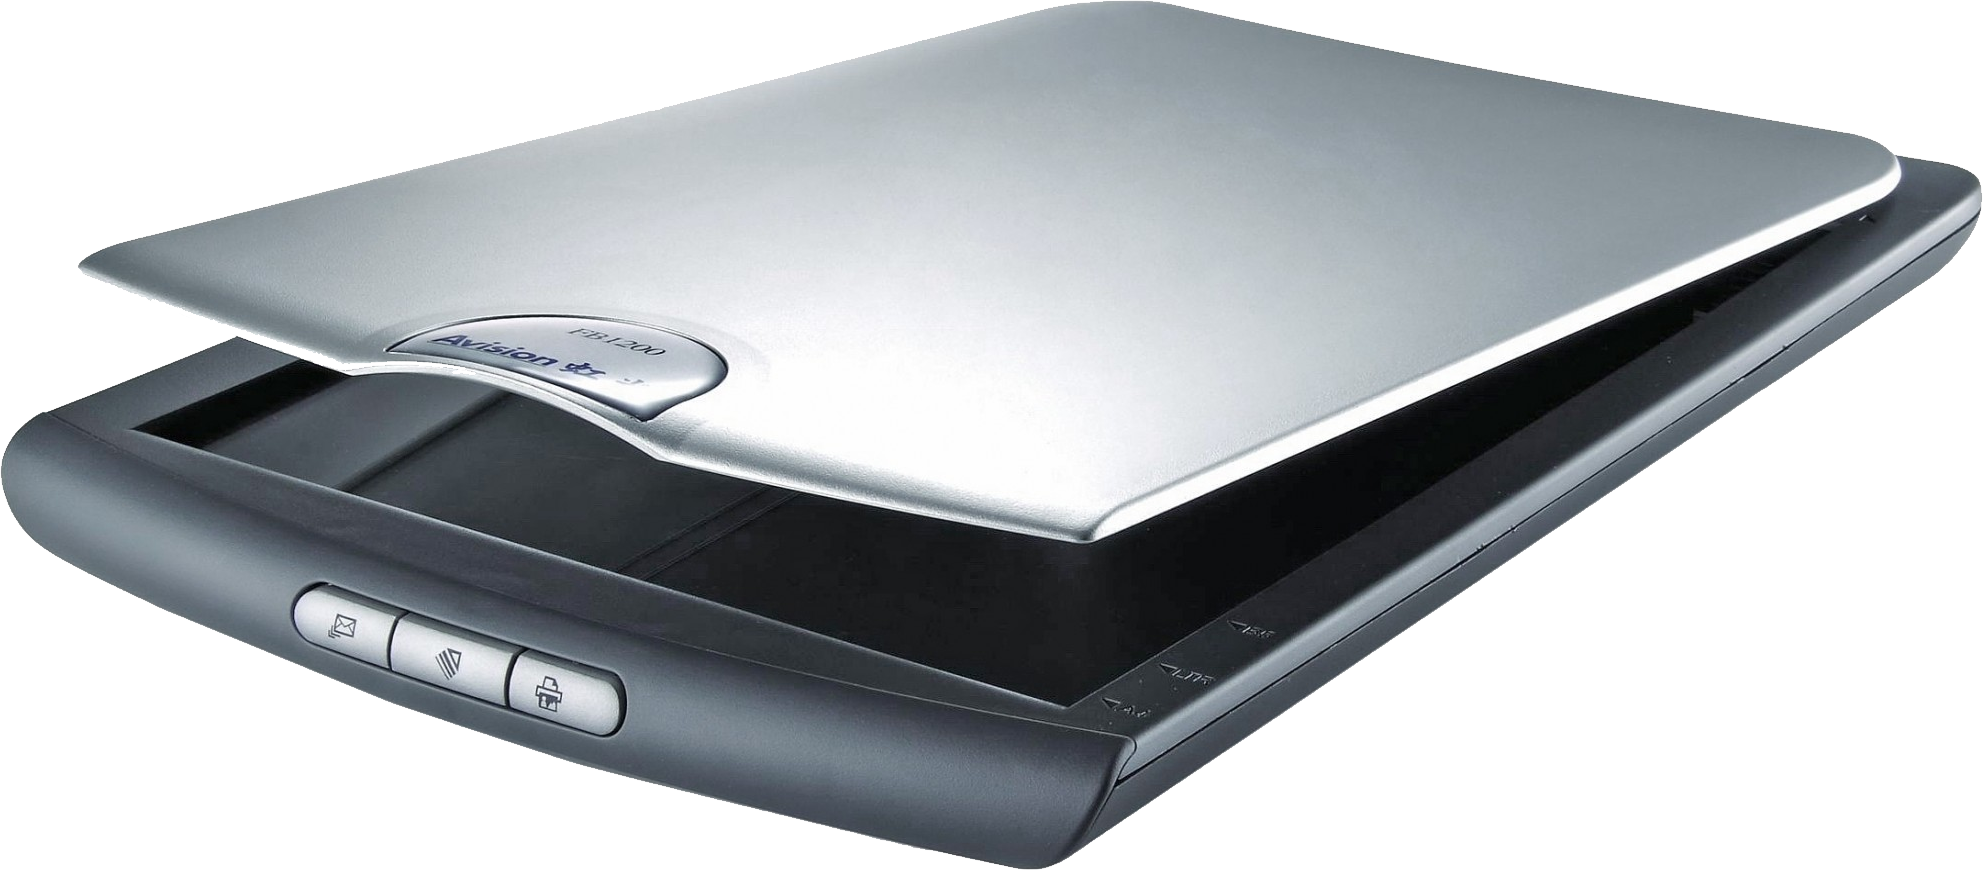 Scanner png image purepng. Electronics clipart electronic device